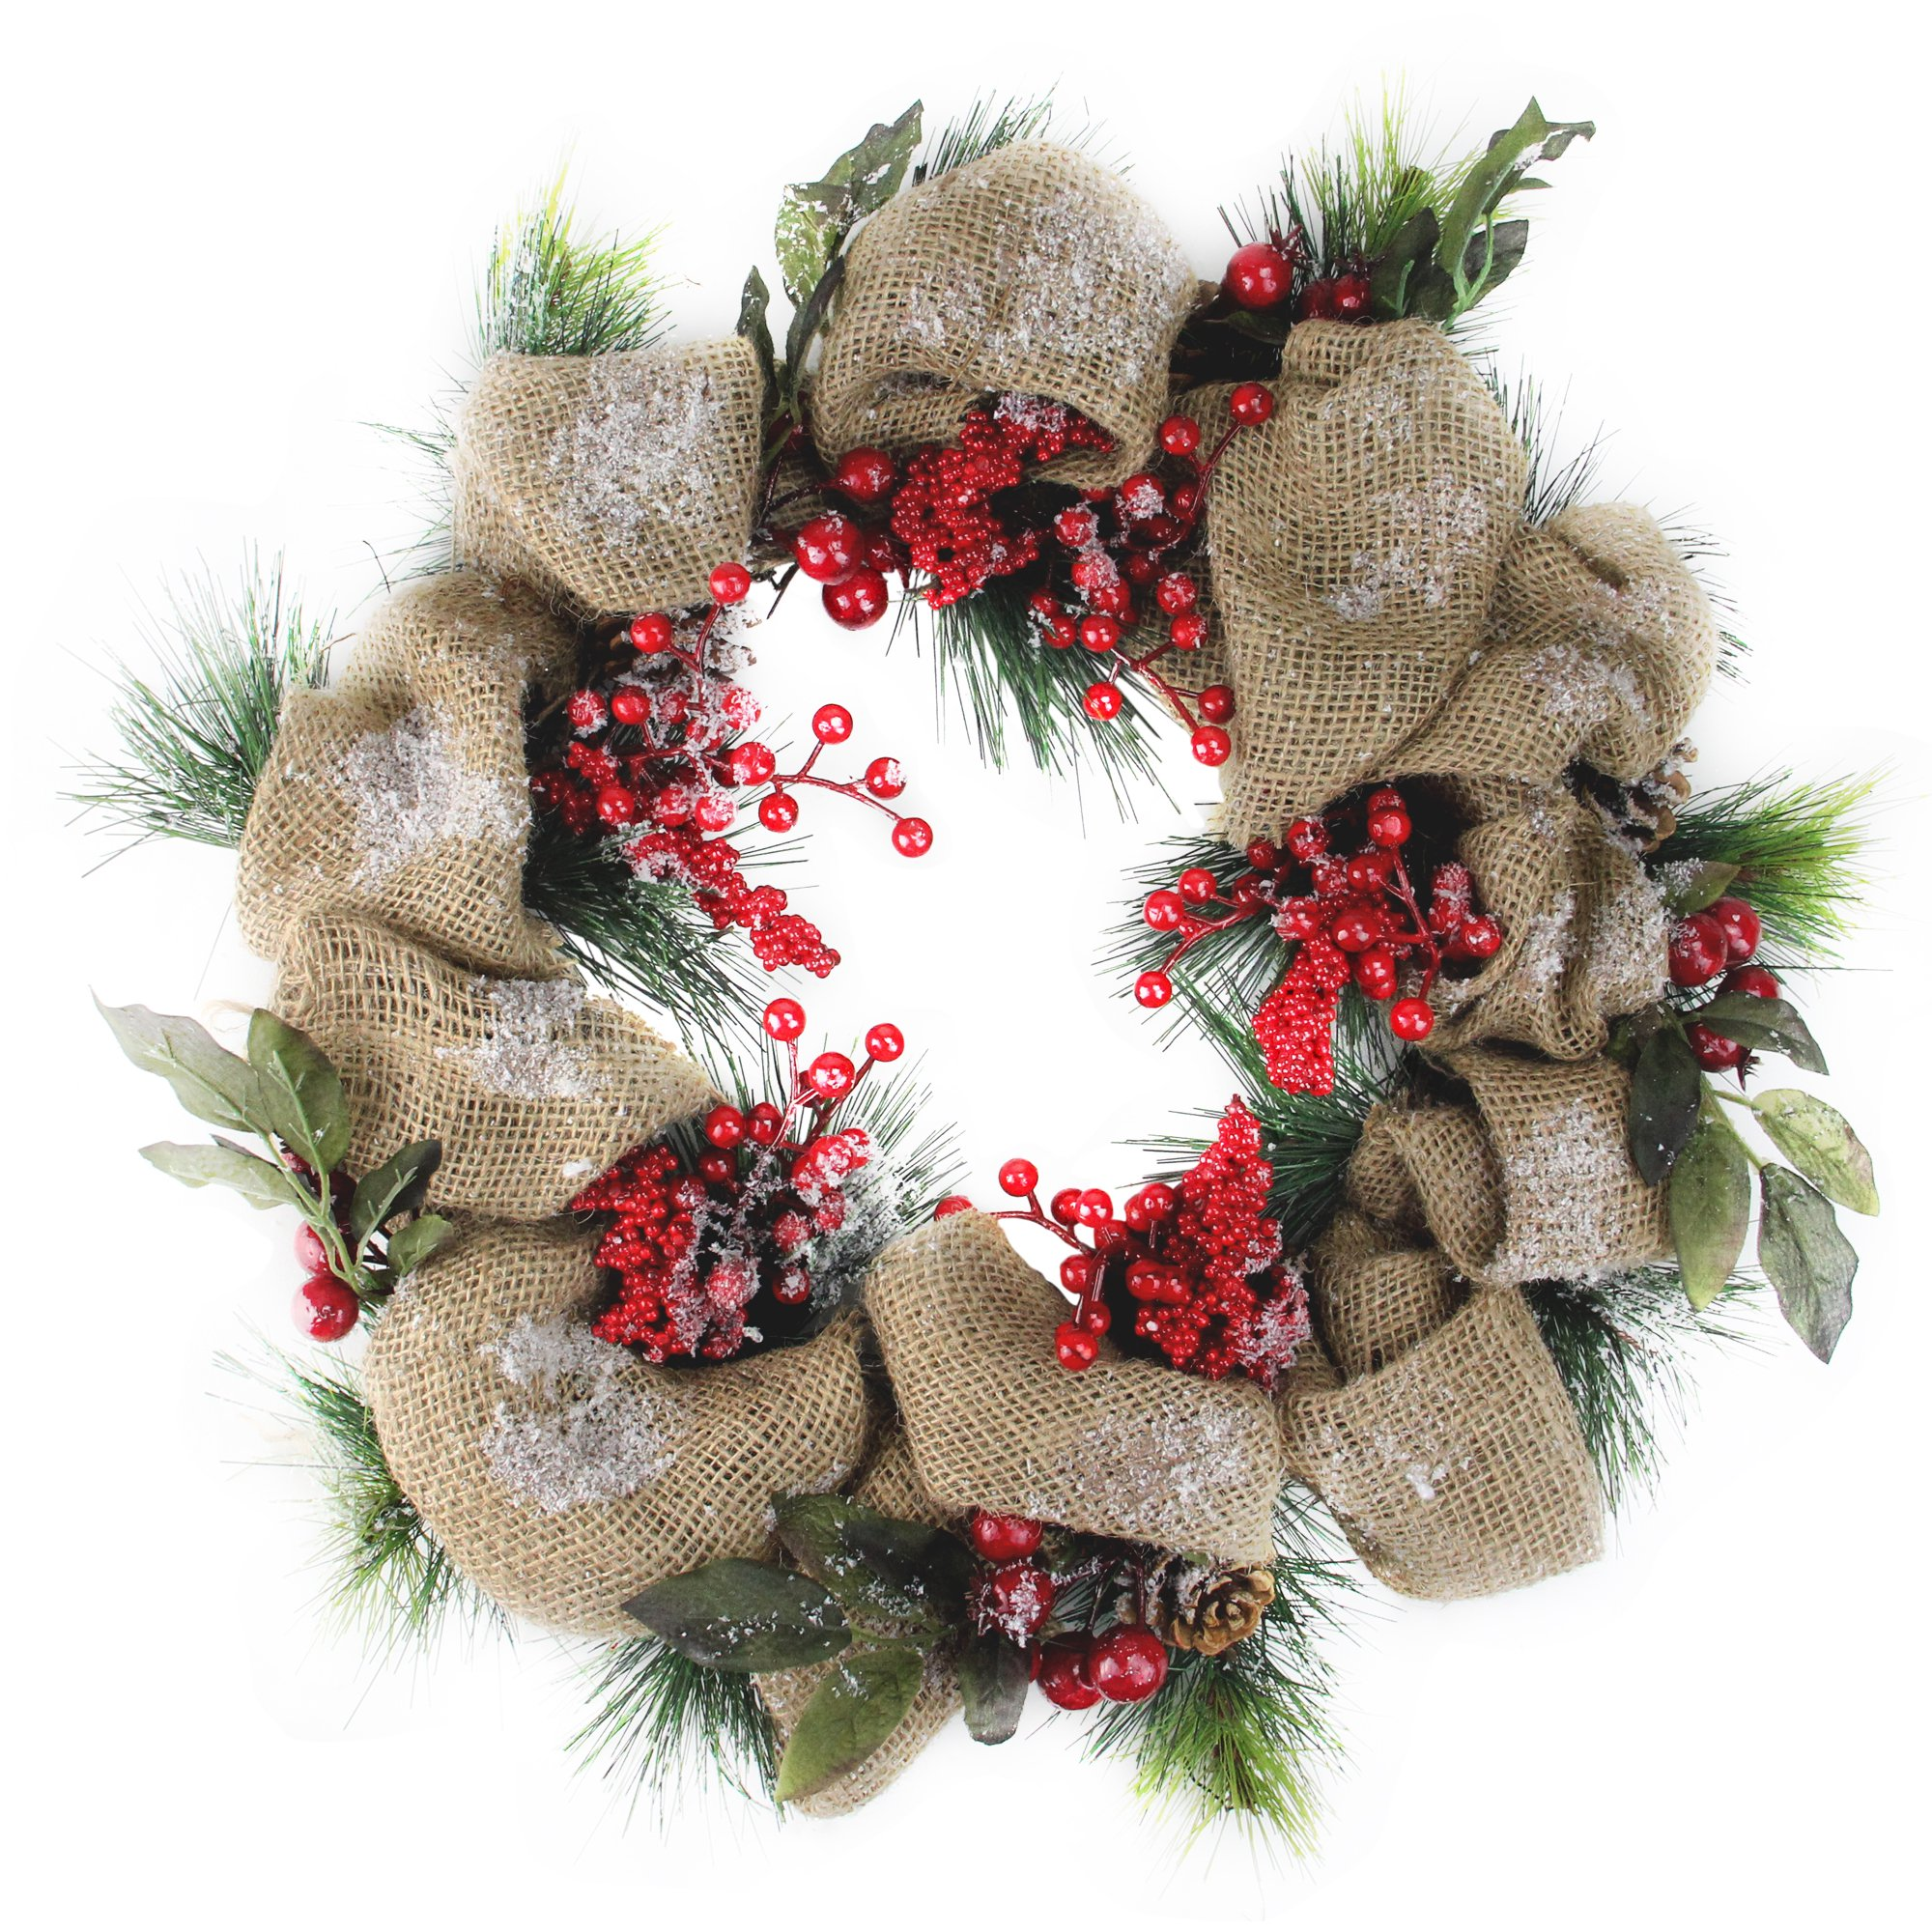 Christmas Wreath.18 Snow Dusted Country Rustic Artificial Christmas Wreath With Berries And Pine Cones Unlit